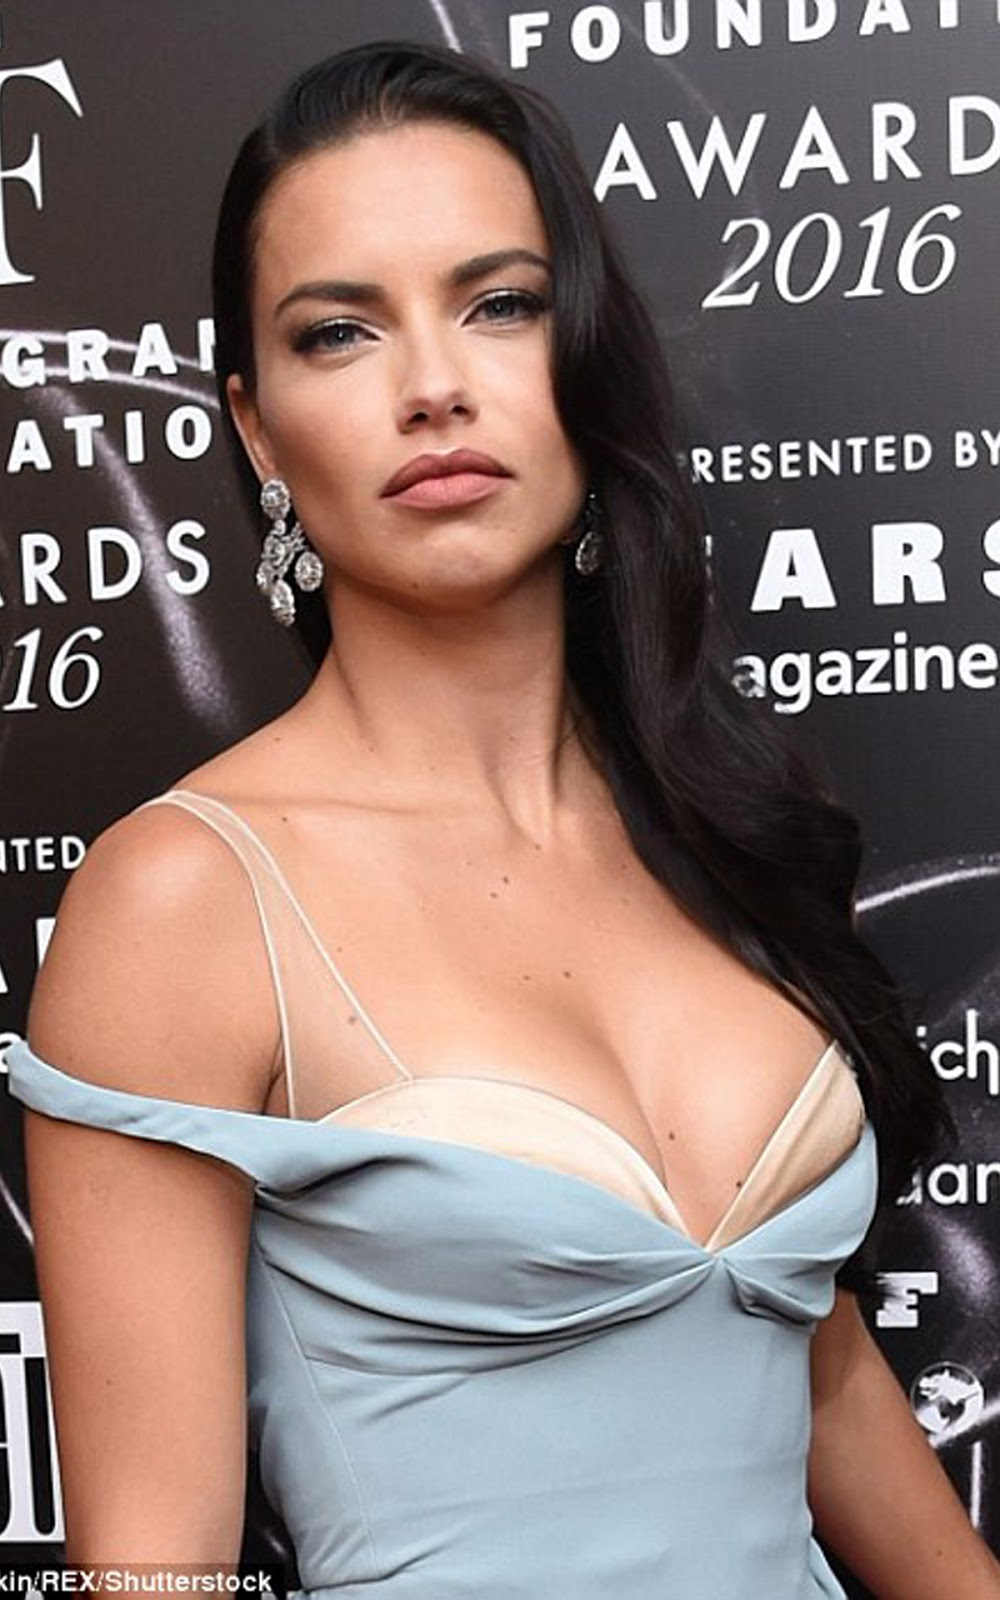 MODEL ADRIANA LIMA : Adriana's designer number revealed her ample bosom as the dress straps fell from her shoulders revealing a bra detail that only focused more attention on her cleavage